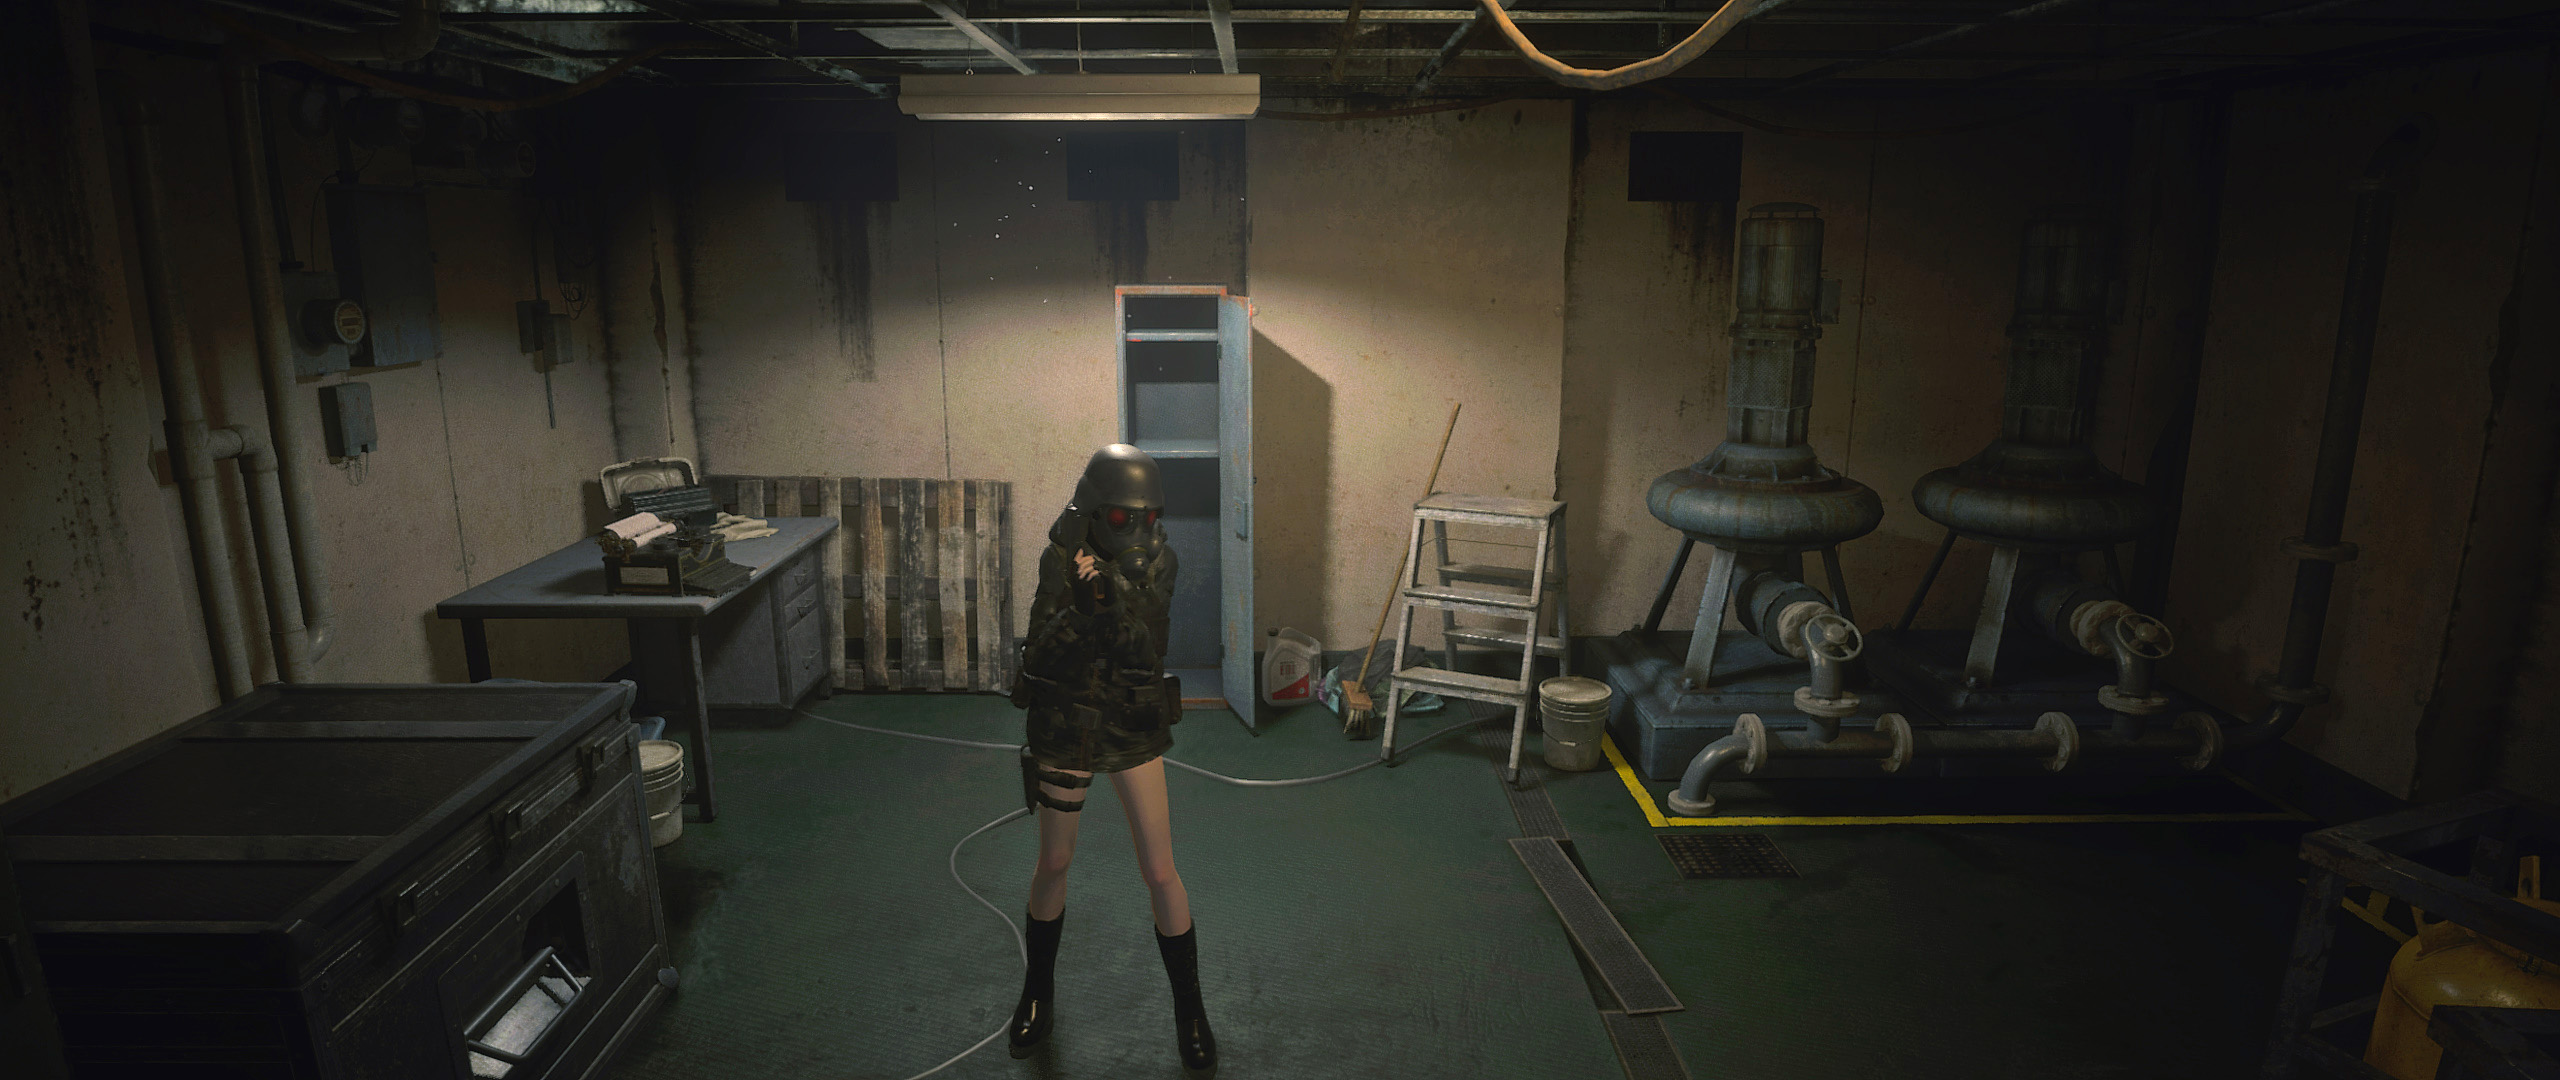 Lady Hunk For Claire Jacket Mod - Resident Evil 2 Remake